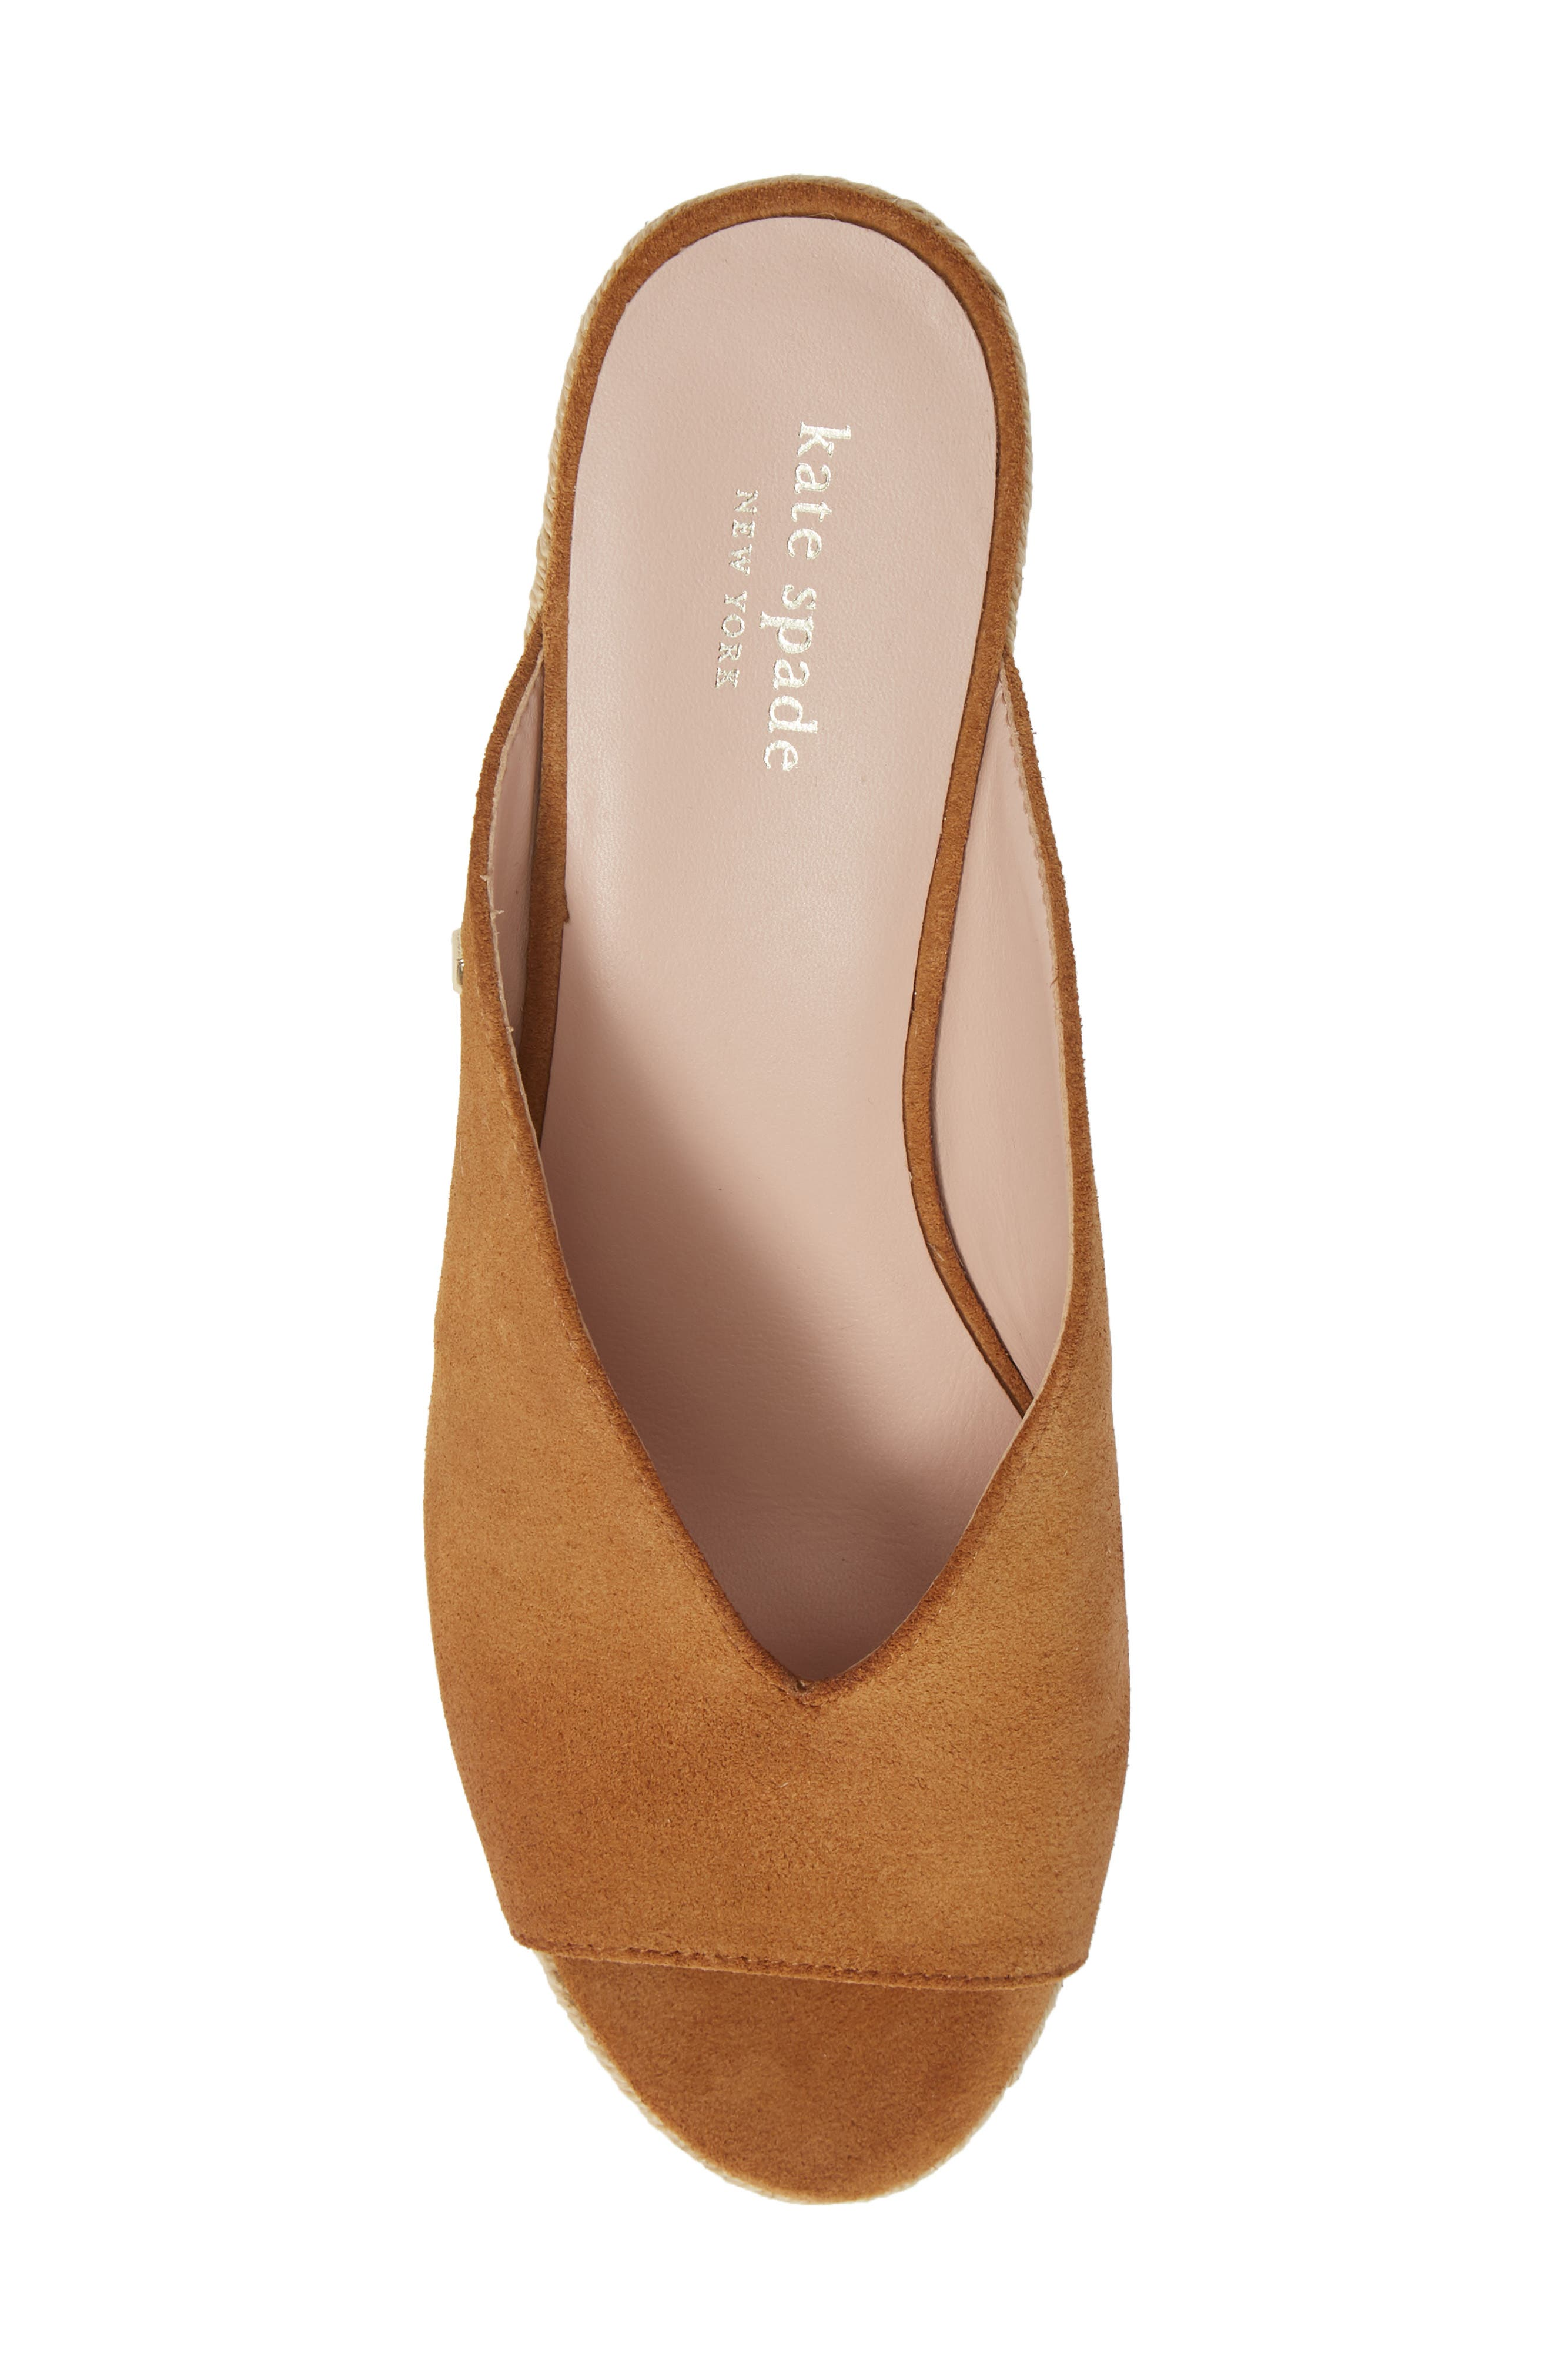 KATE SPADE NEW YORK, thea wedge espadrille mule, Alternate thumbnail 5, color, TOAST